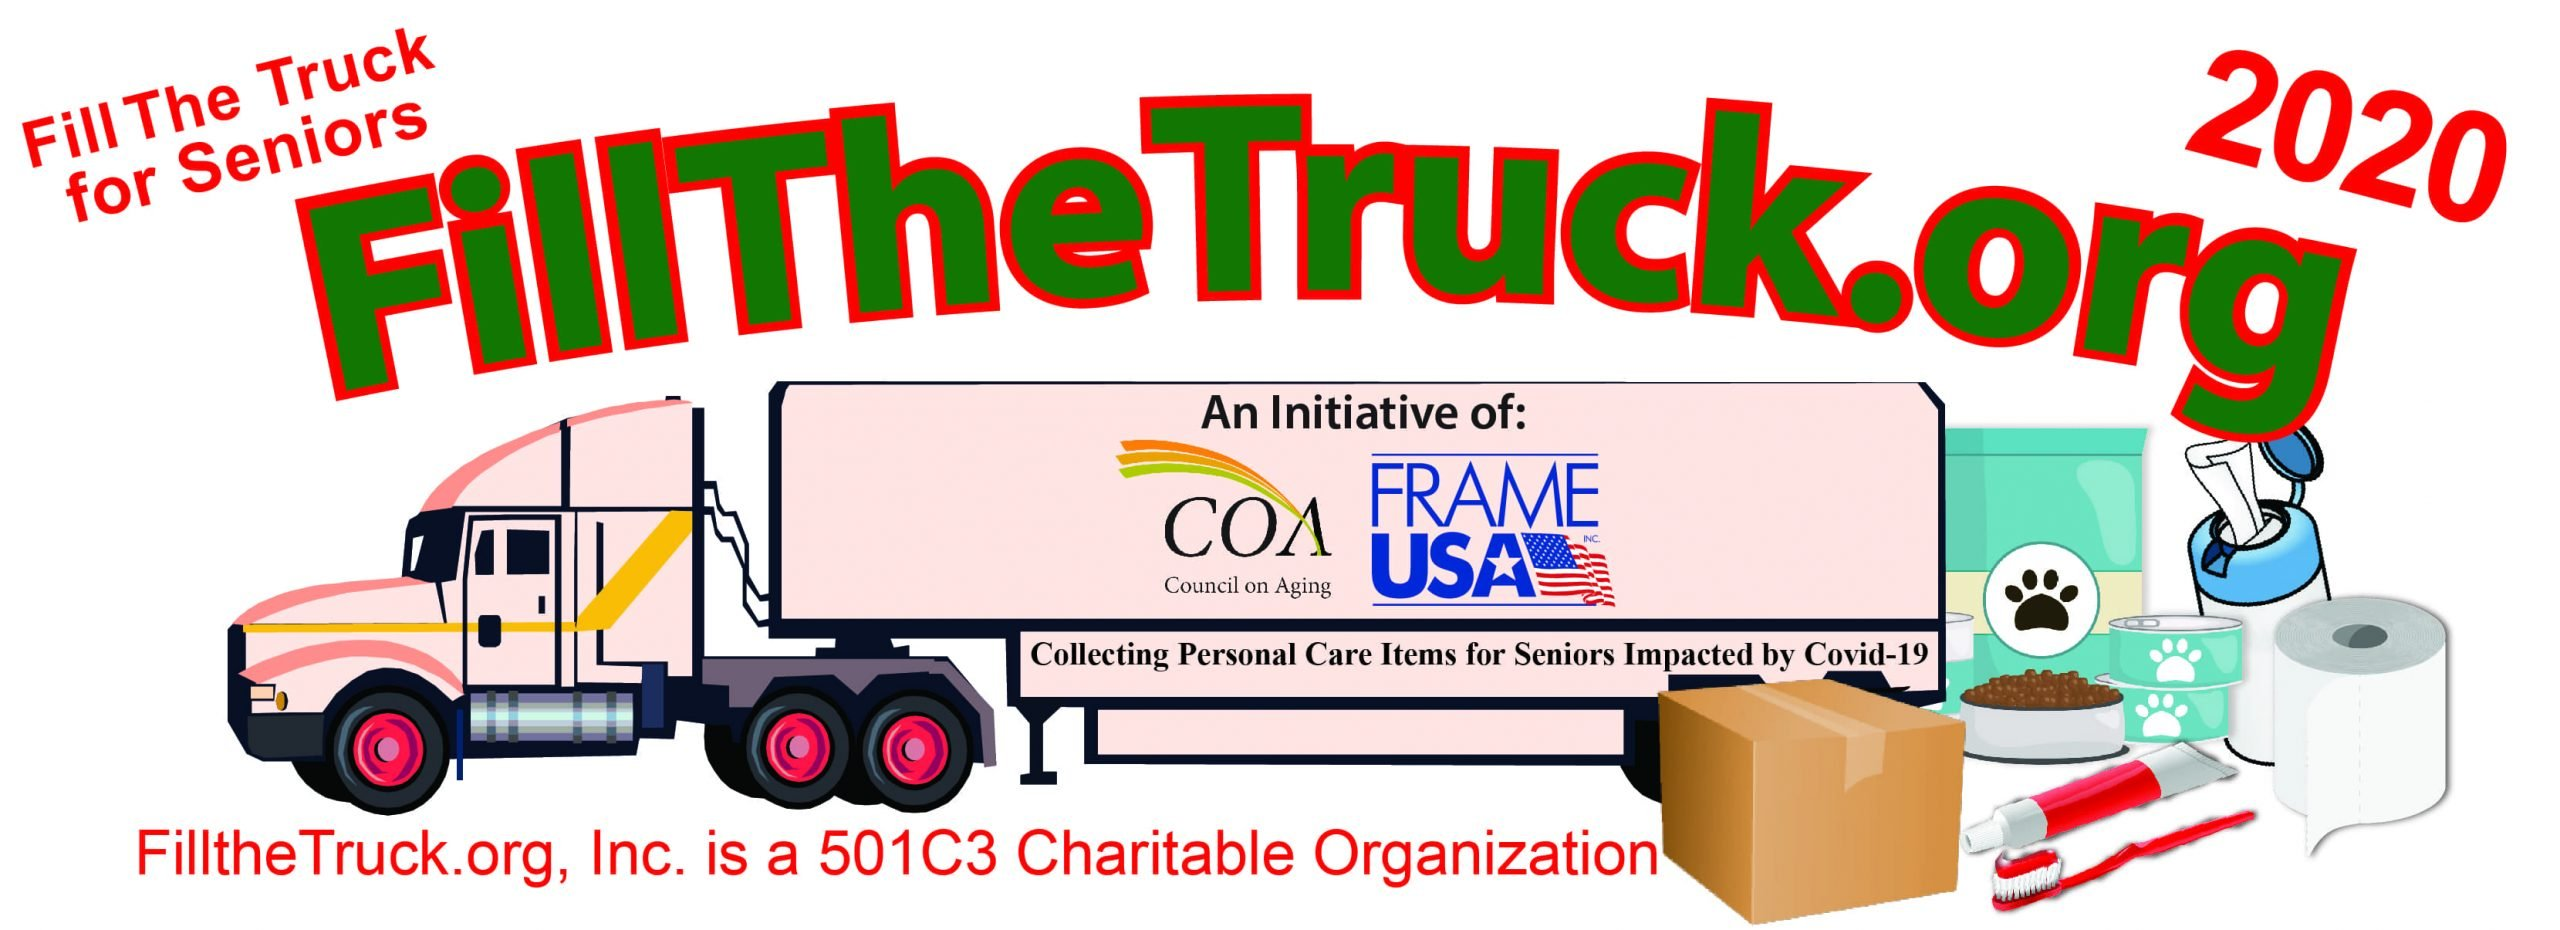 April 2020 Charity of The Month — Fill The Truck for Seniors